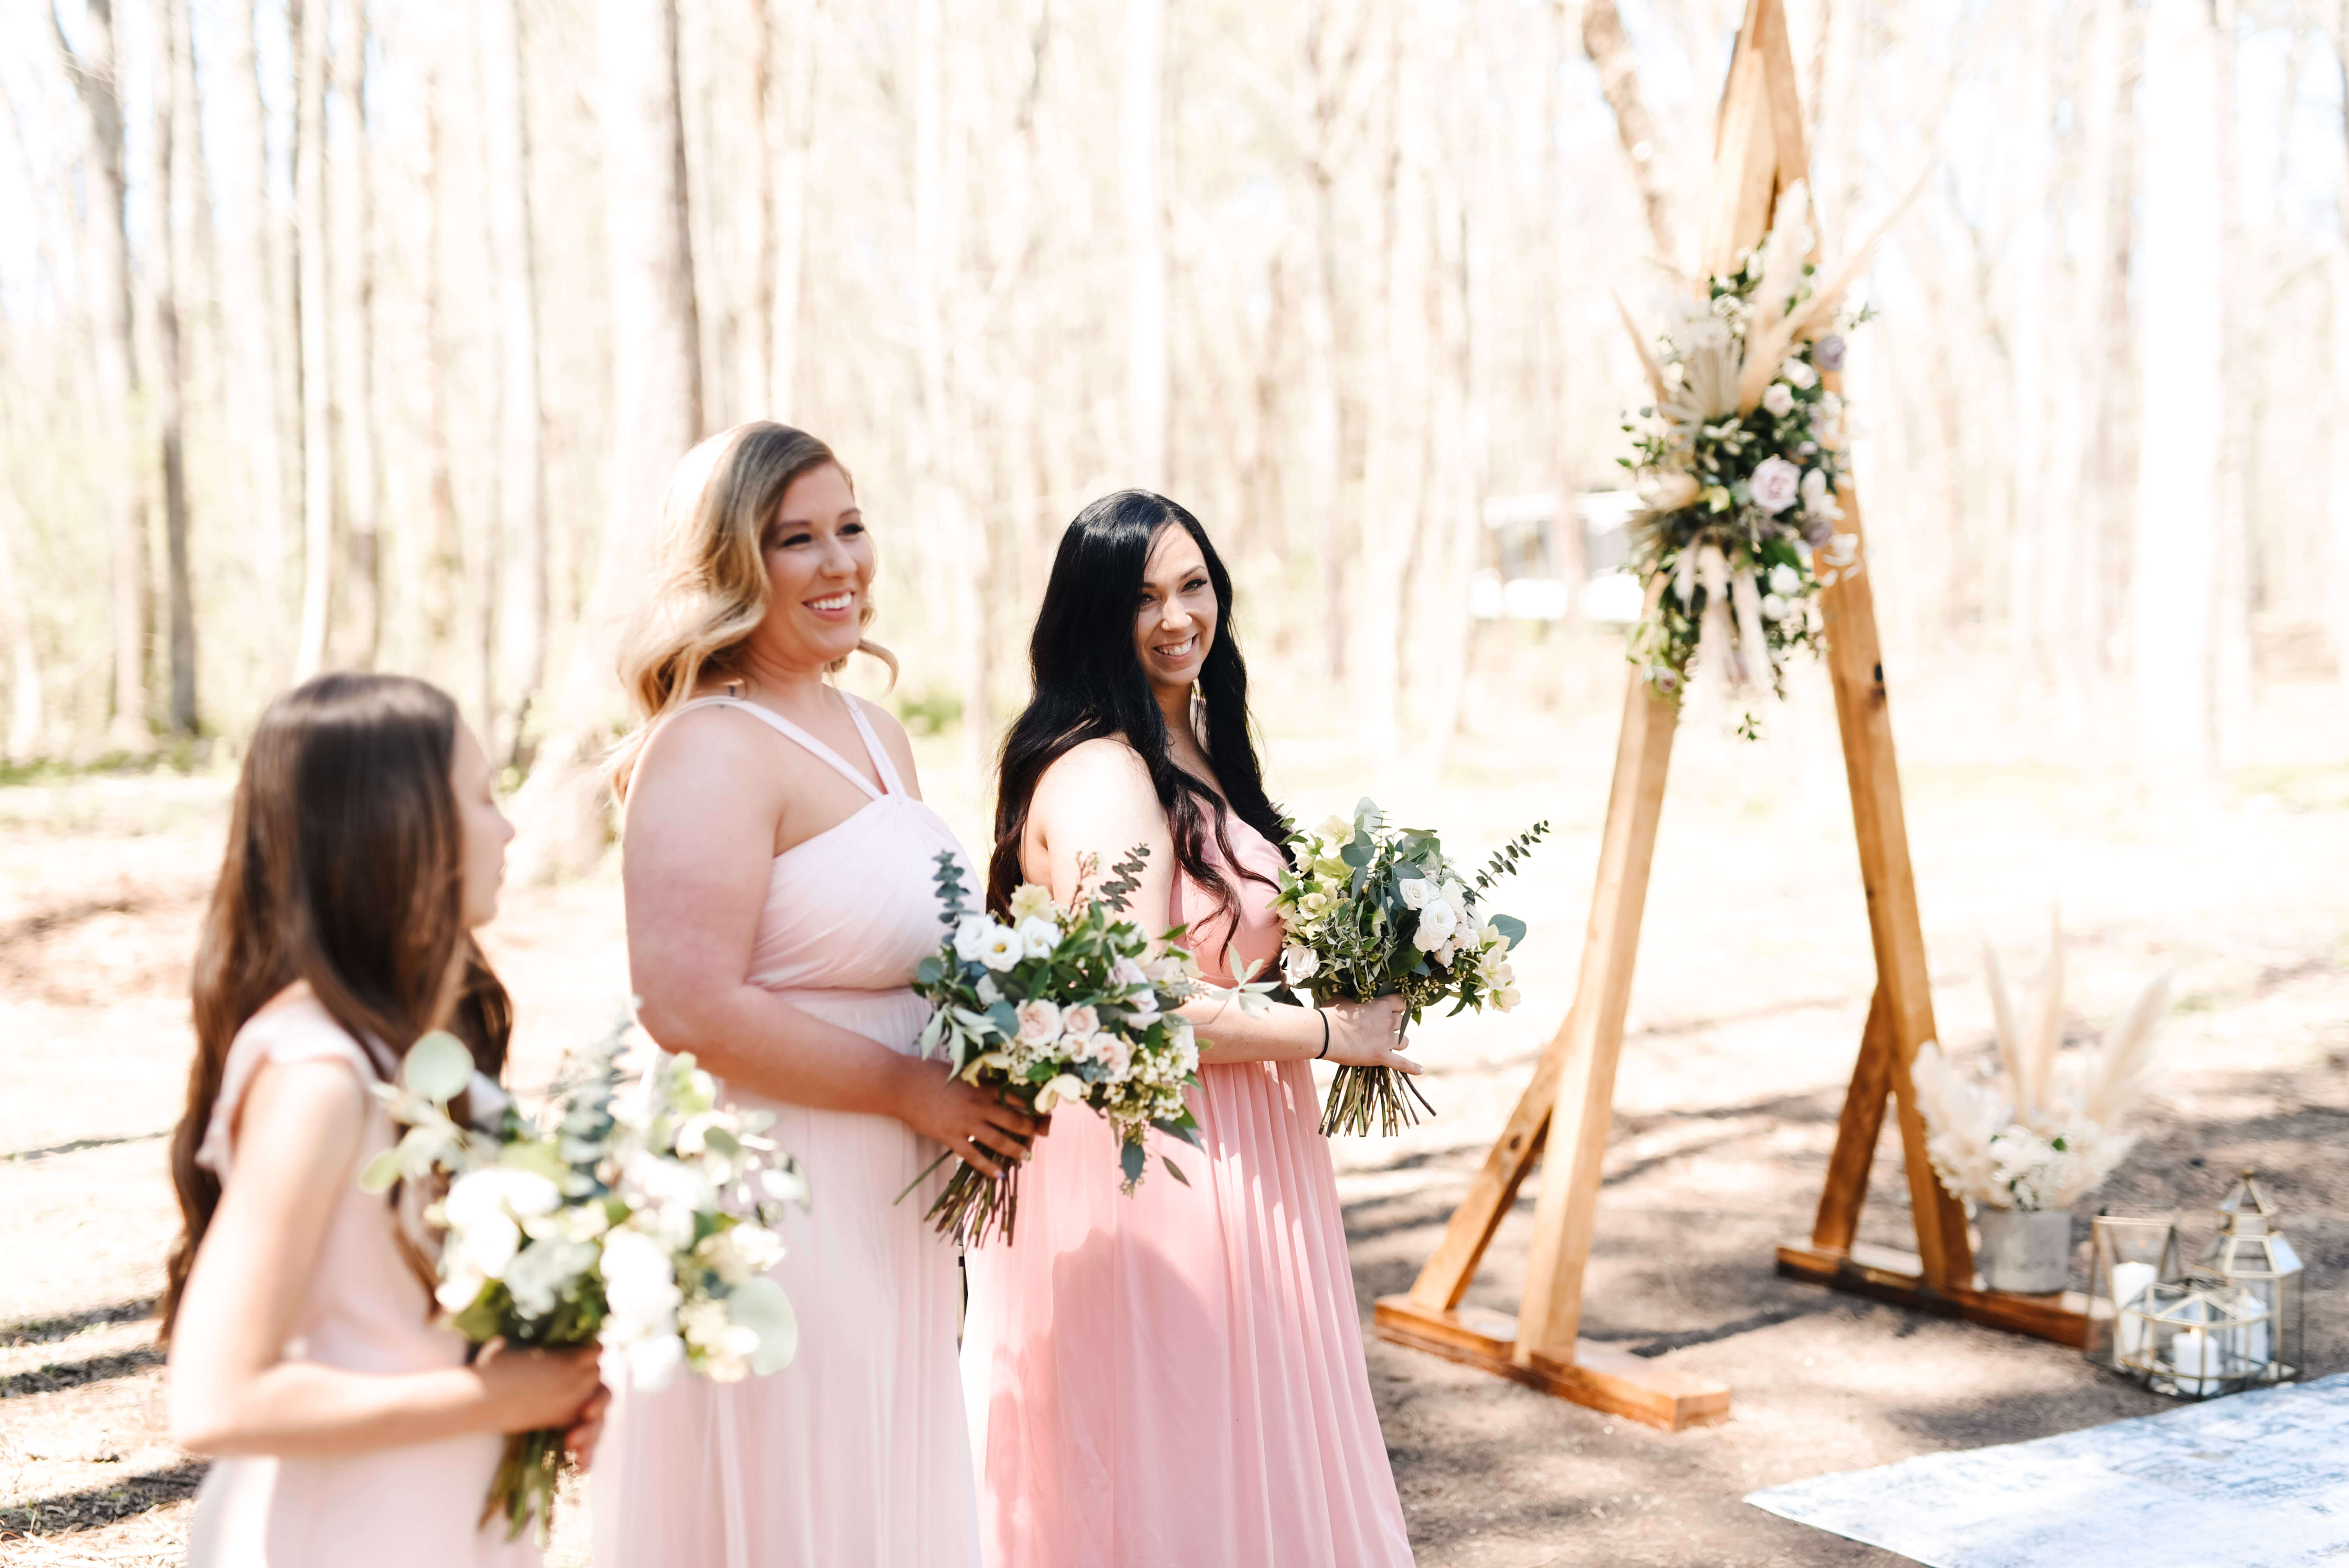 Blush and Plum Wedding, Wedding in the Woods, Triangle Arch, Lang Floral Designs, Chattanooga Wedding Florist, Chattanooga Day-of Coordinator, Chattanooga Wedding Planner